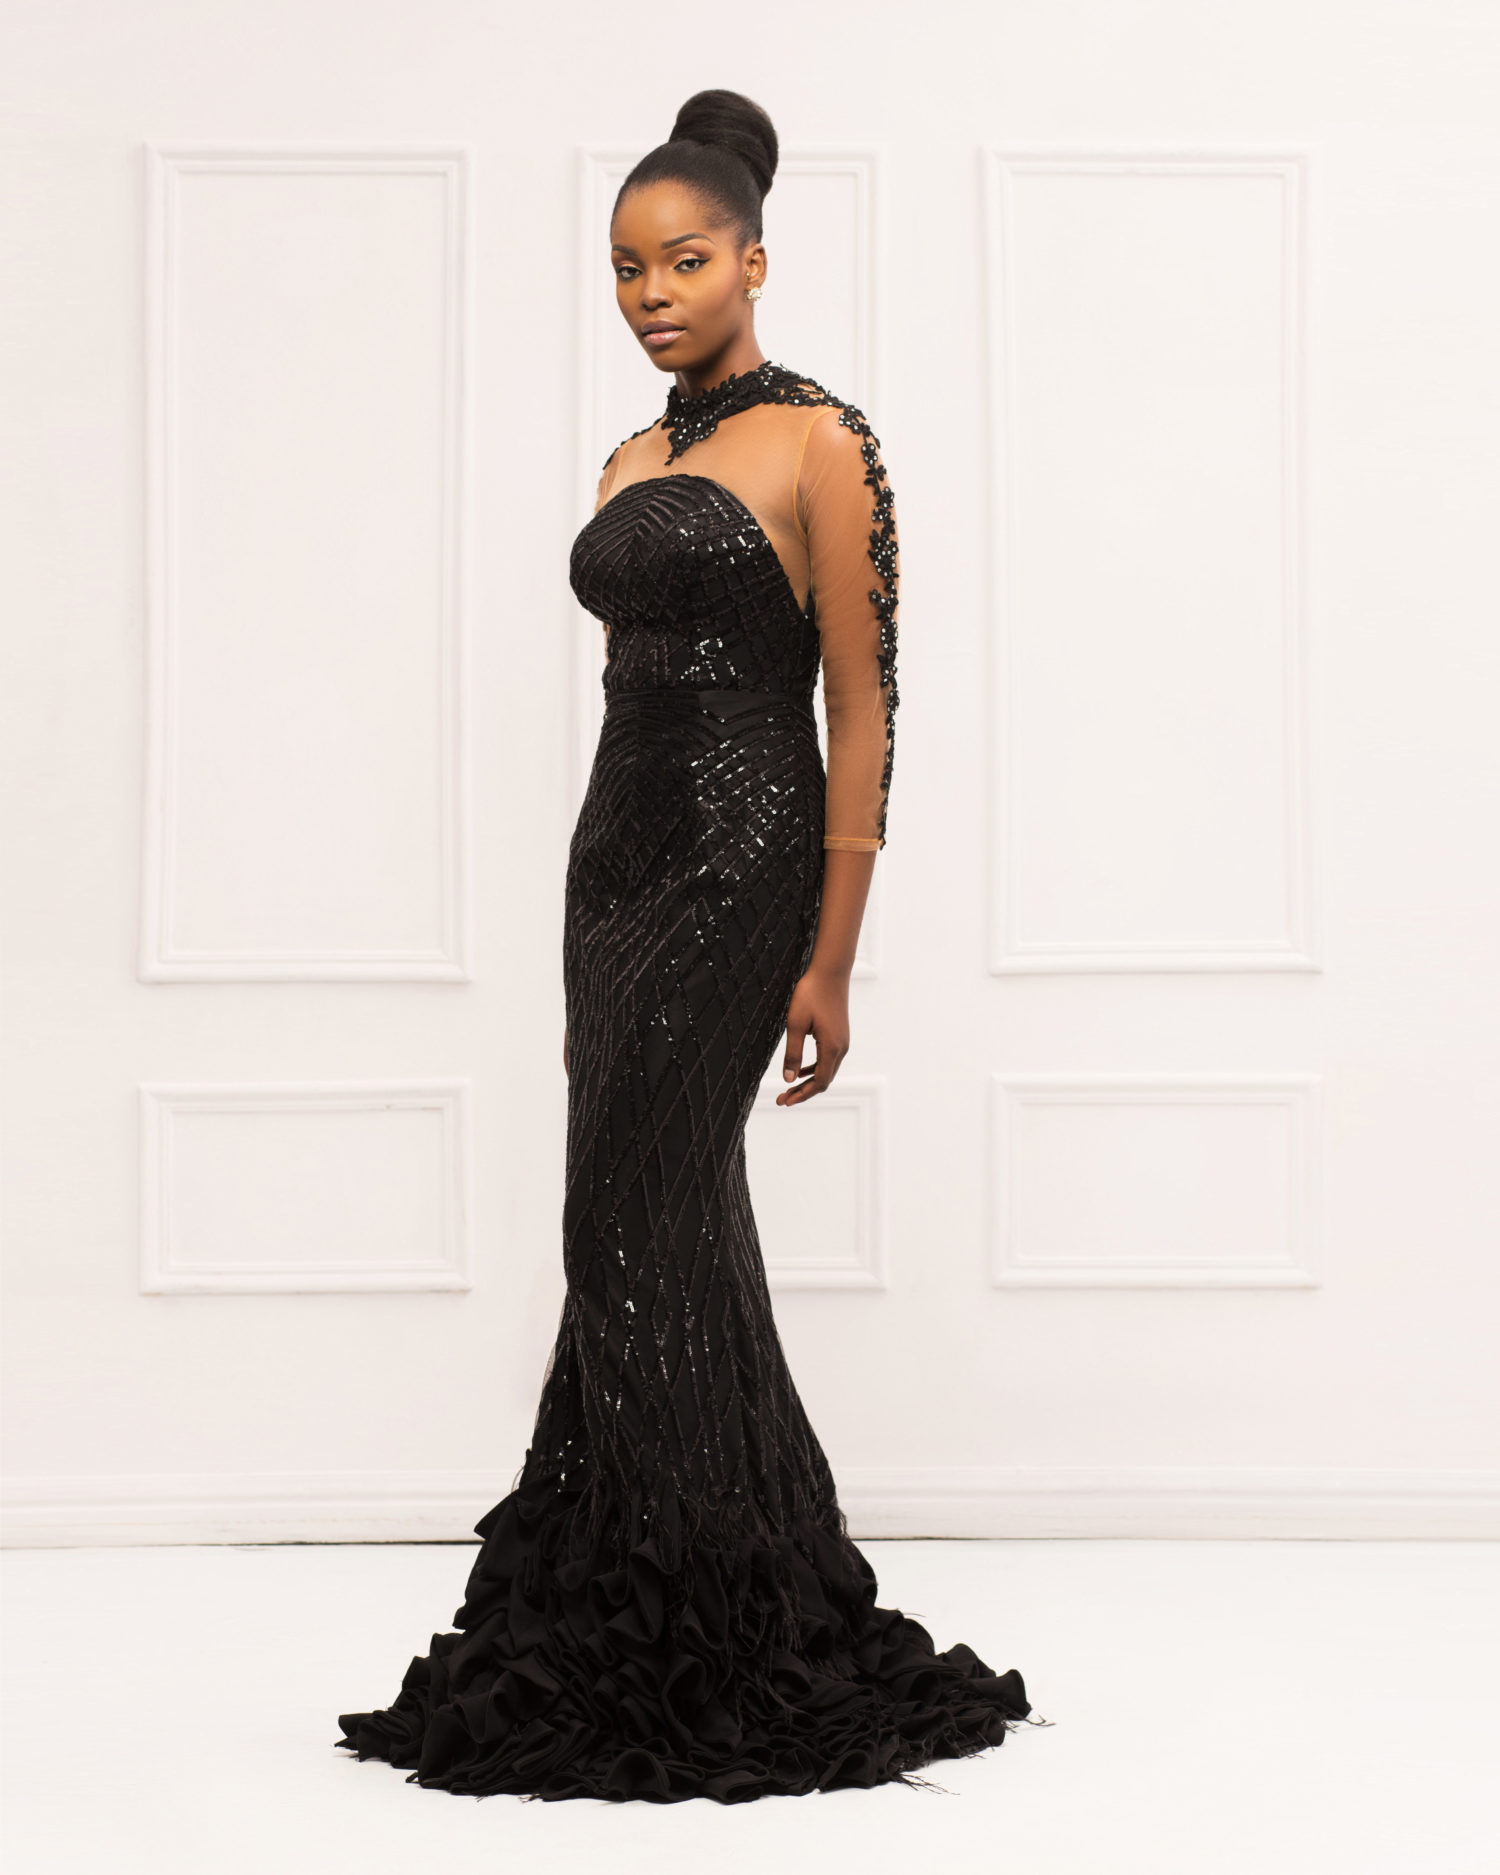 UjuEstelo Unveils Her 'Memoirs of the Fearless' Collection Just In Time for AMVCA Season